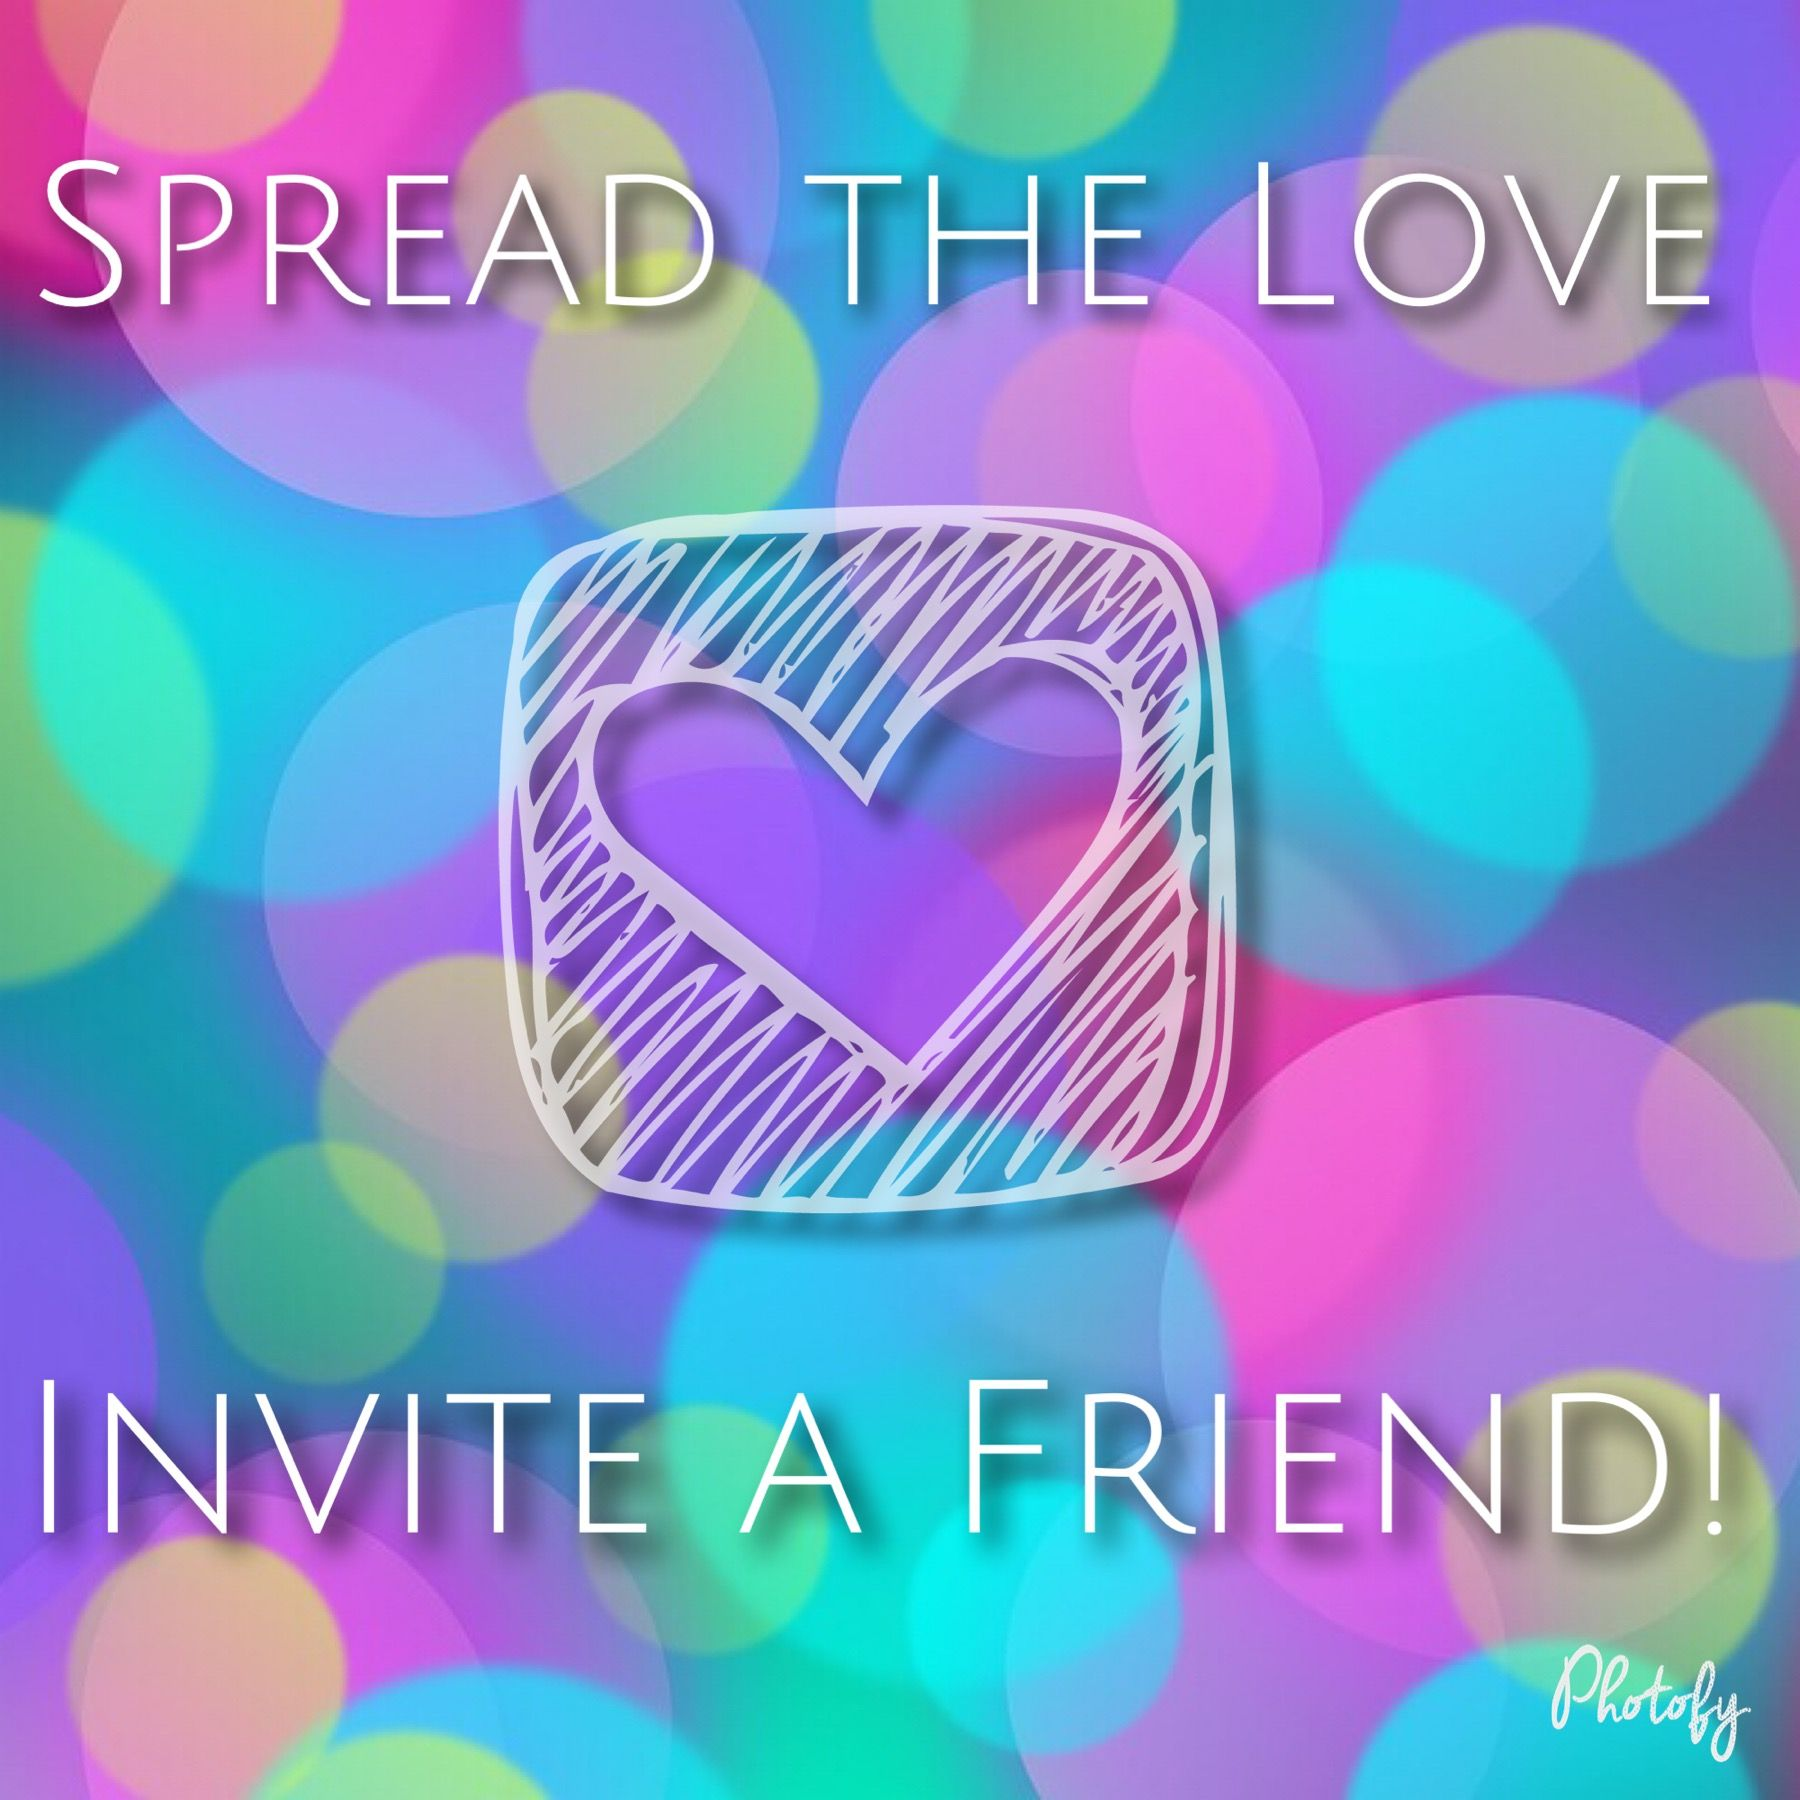 Spread the love, invite a friend | Jamberry Party Games ...